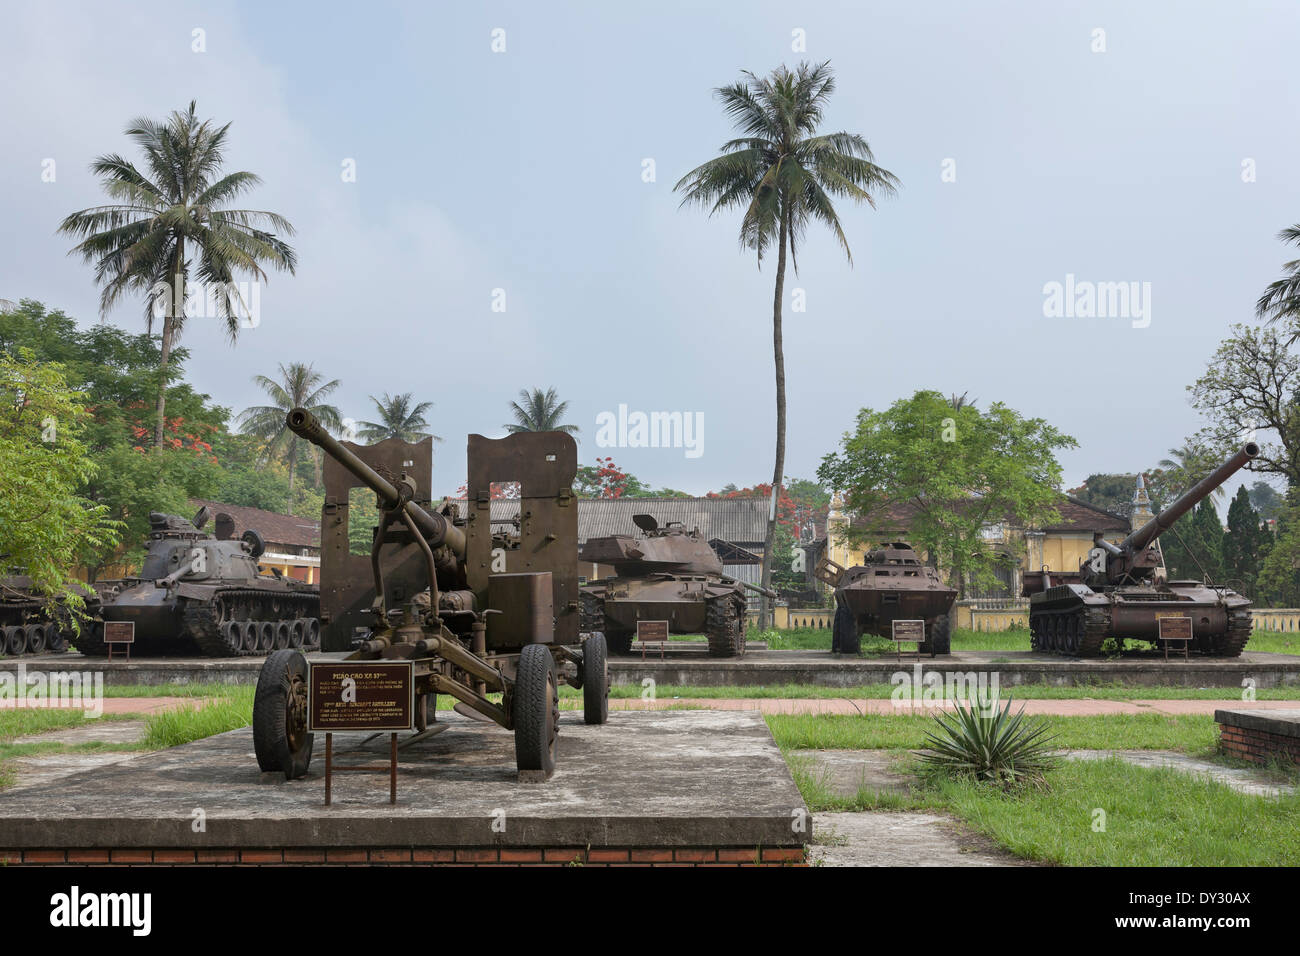 Tanks At Military Museum Hue Vietnam Stock Photo Royalty Free - Military museums in us